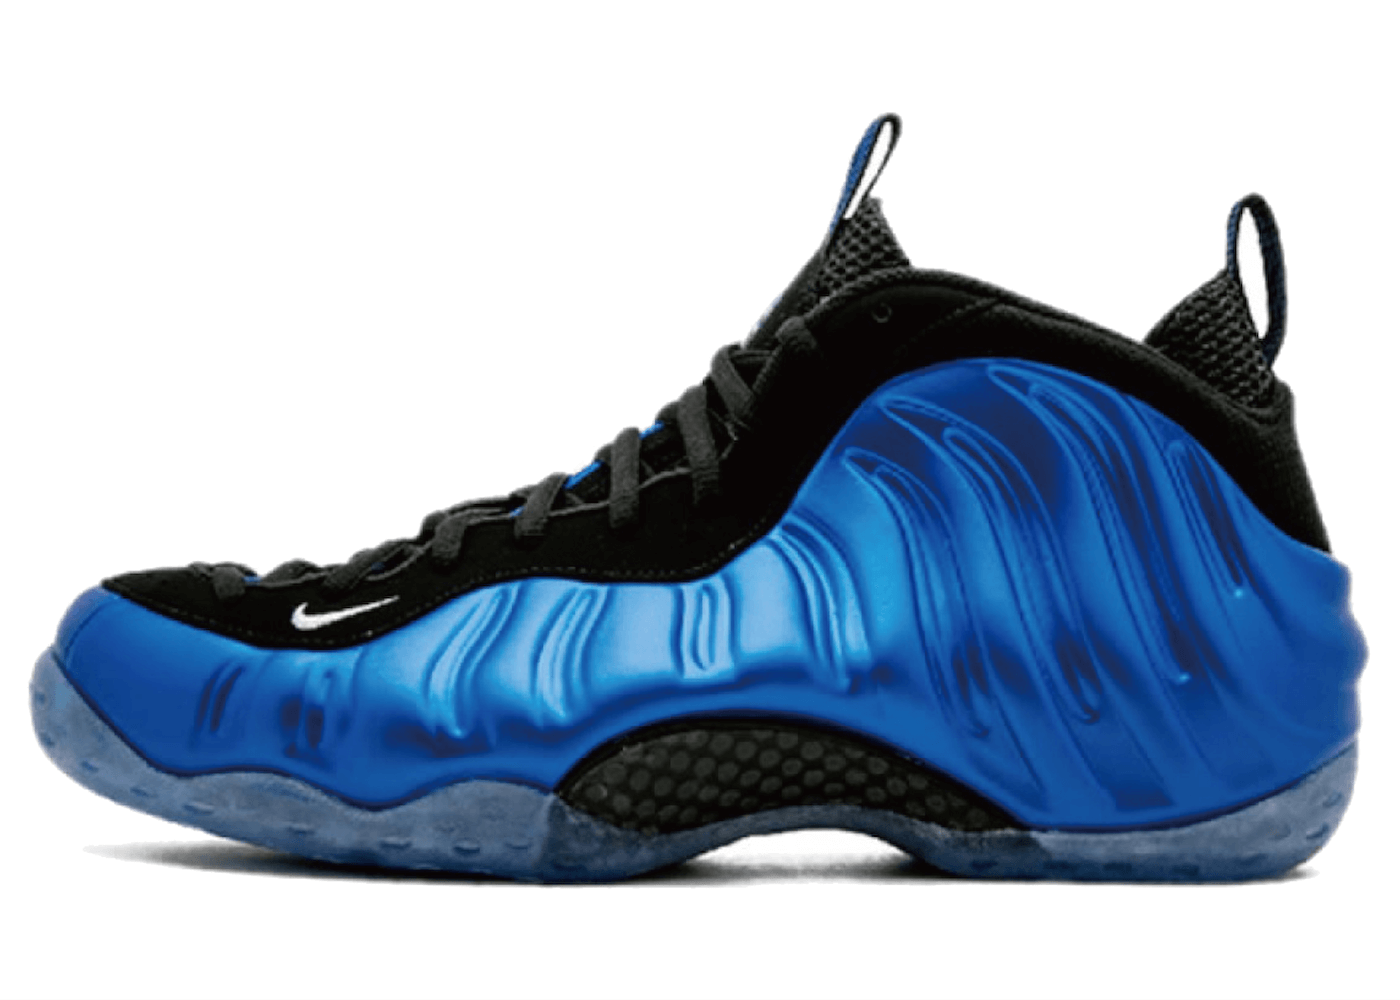 Air Foamposite One Royal Blue XX 20th Anniversary (2017)の写真